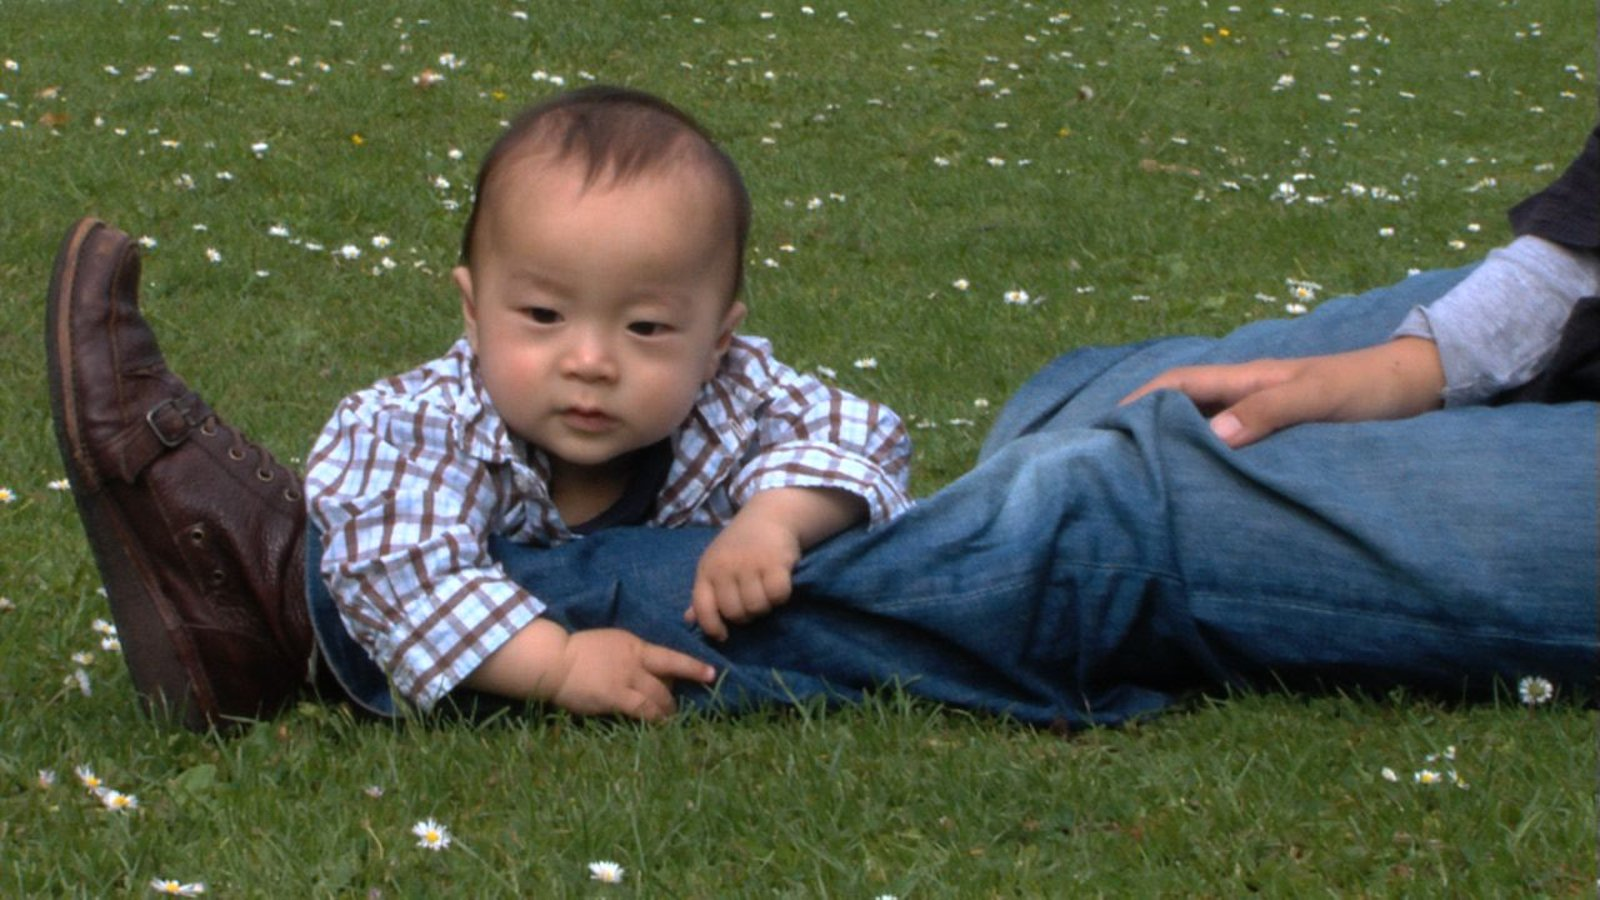 Babies Outdoors - Play, Learning and Development